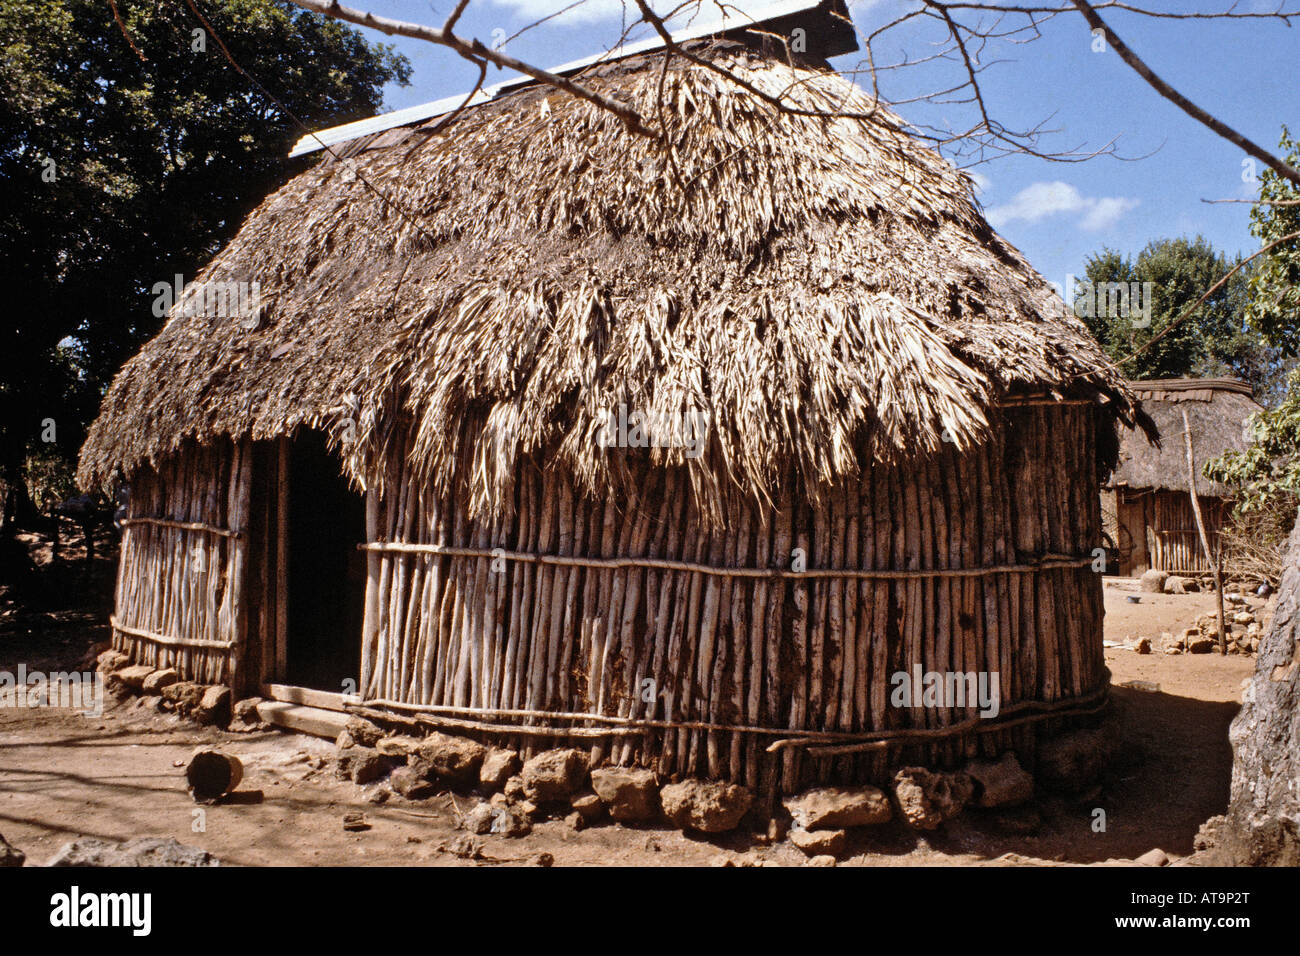 Mayan Thatched Hut In A Rural Part Of Yucatan Mexico Stock